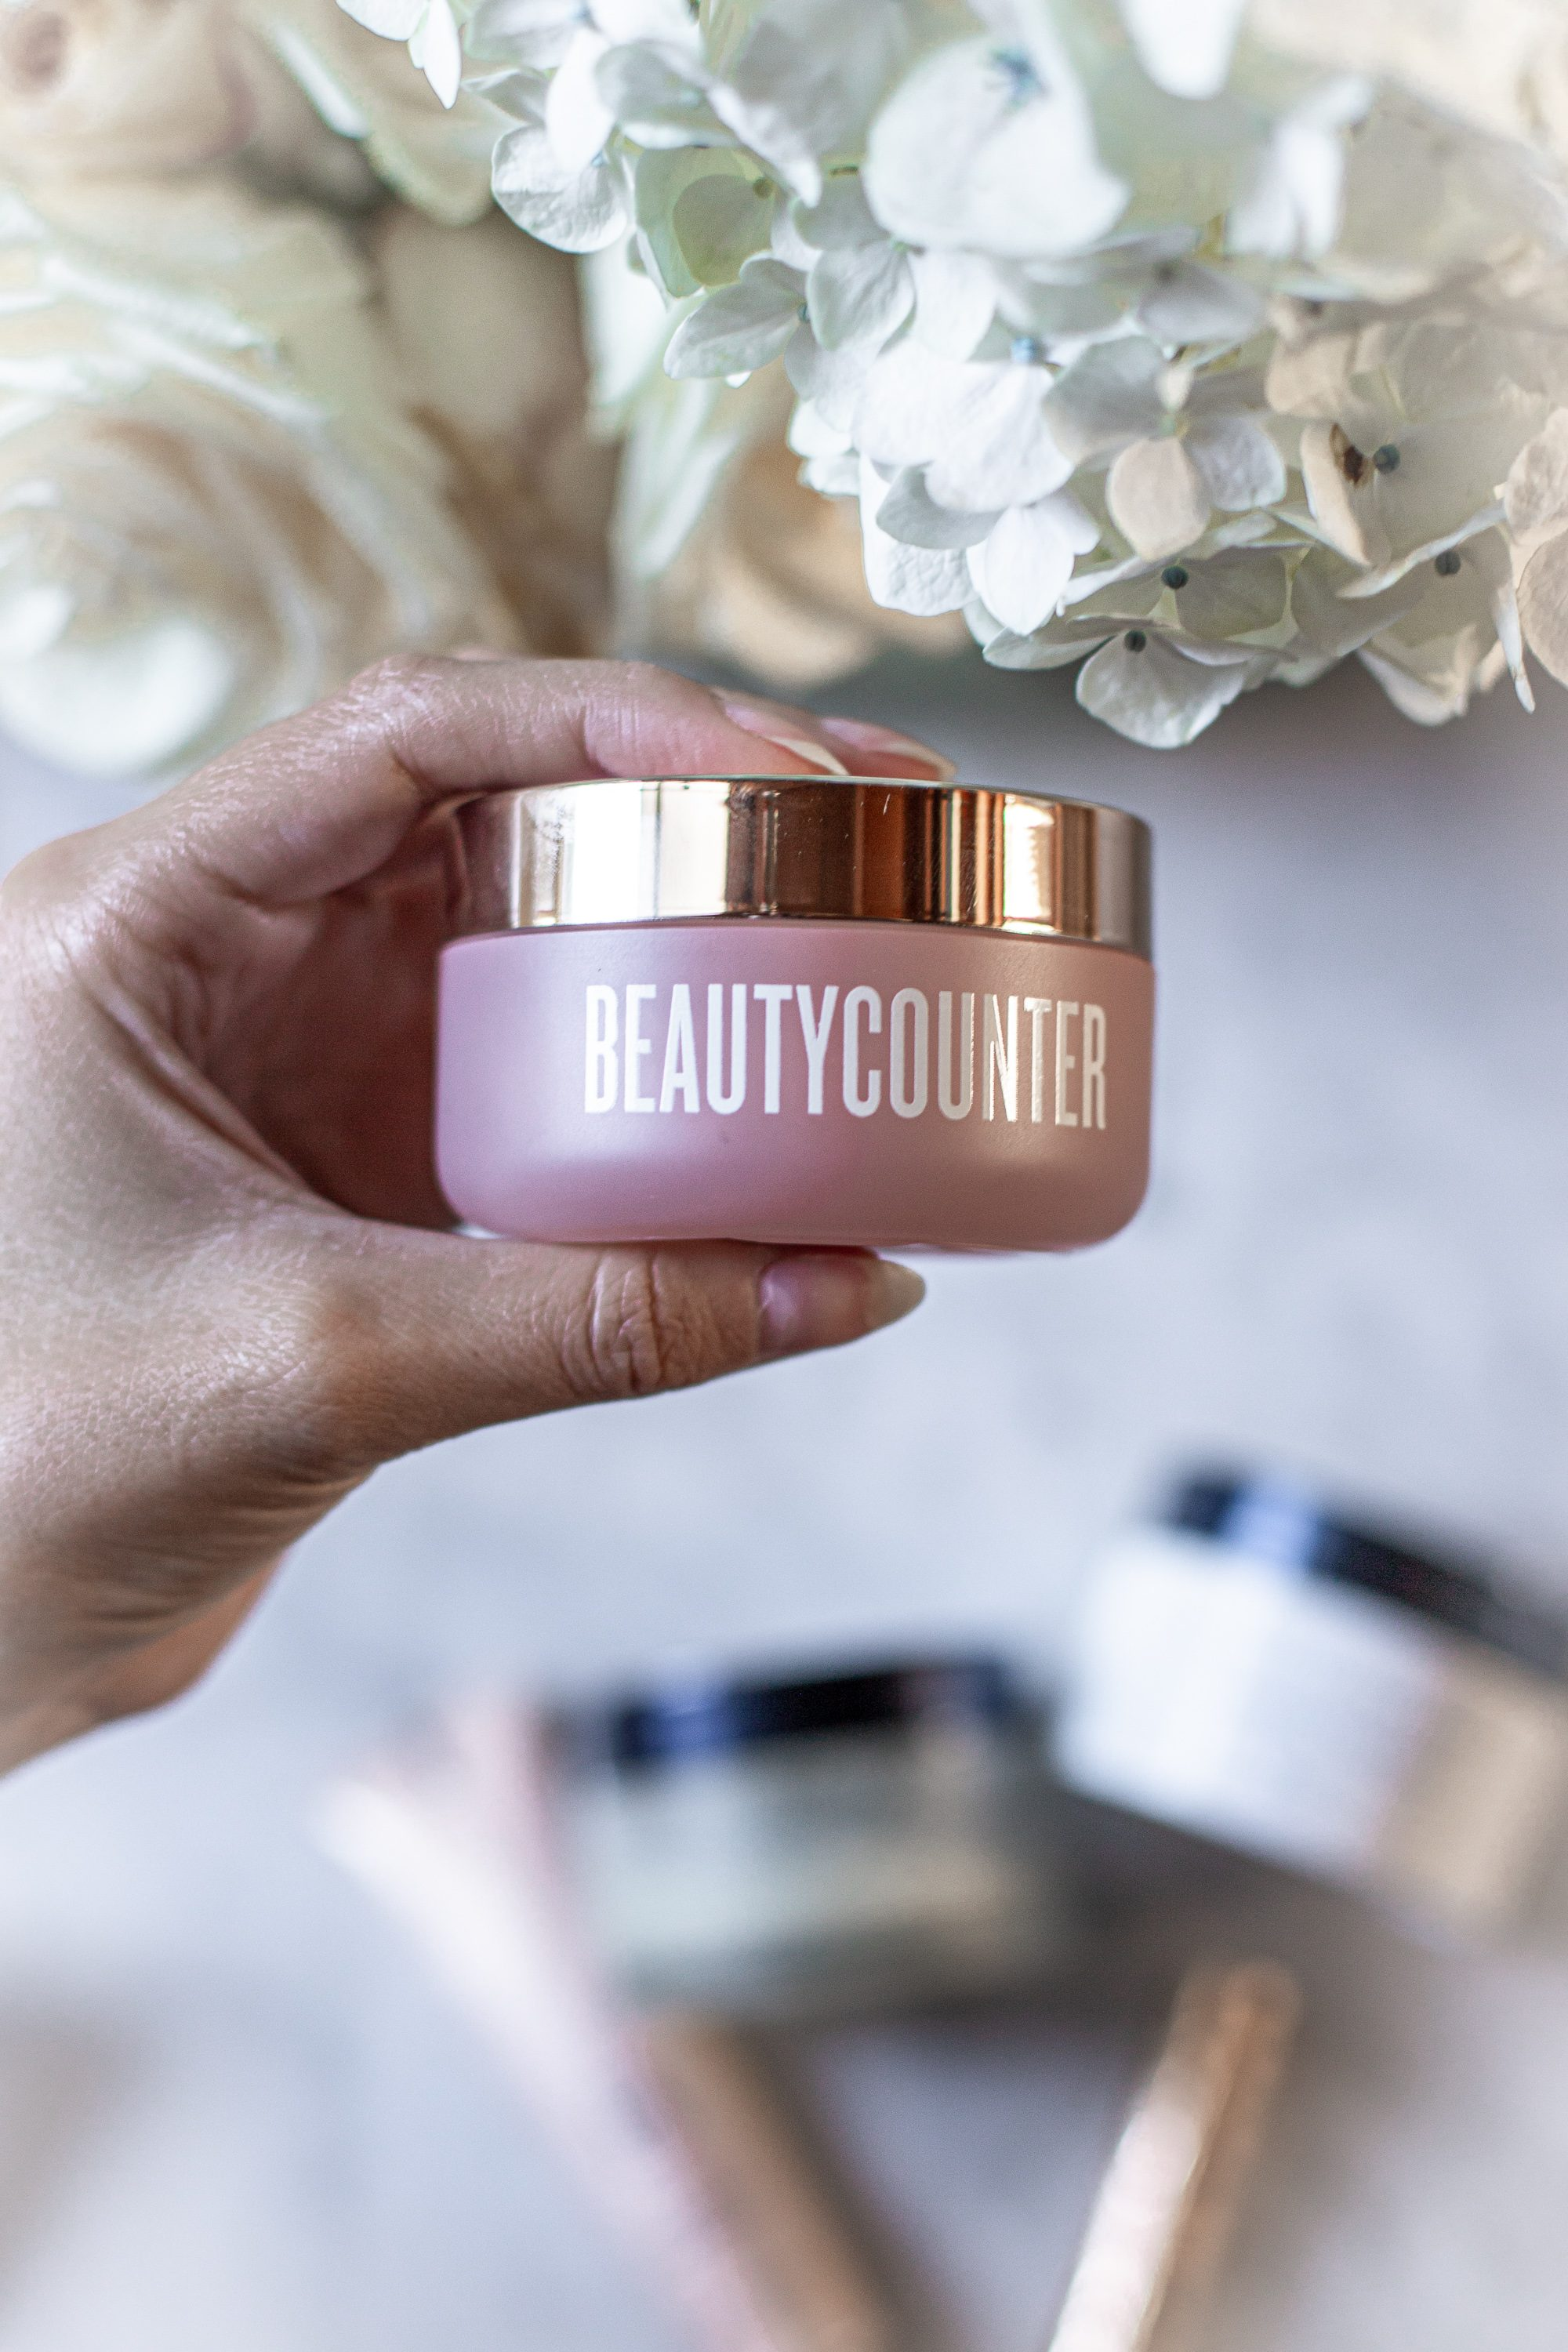 beautycounter countertime, beautycounter cleansing balm, beauty counter, switching to clean beauty, all natural beauty